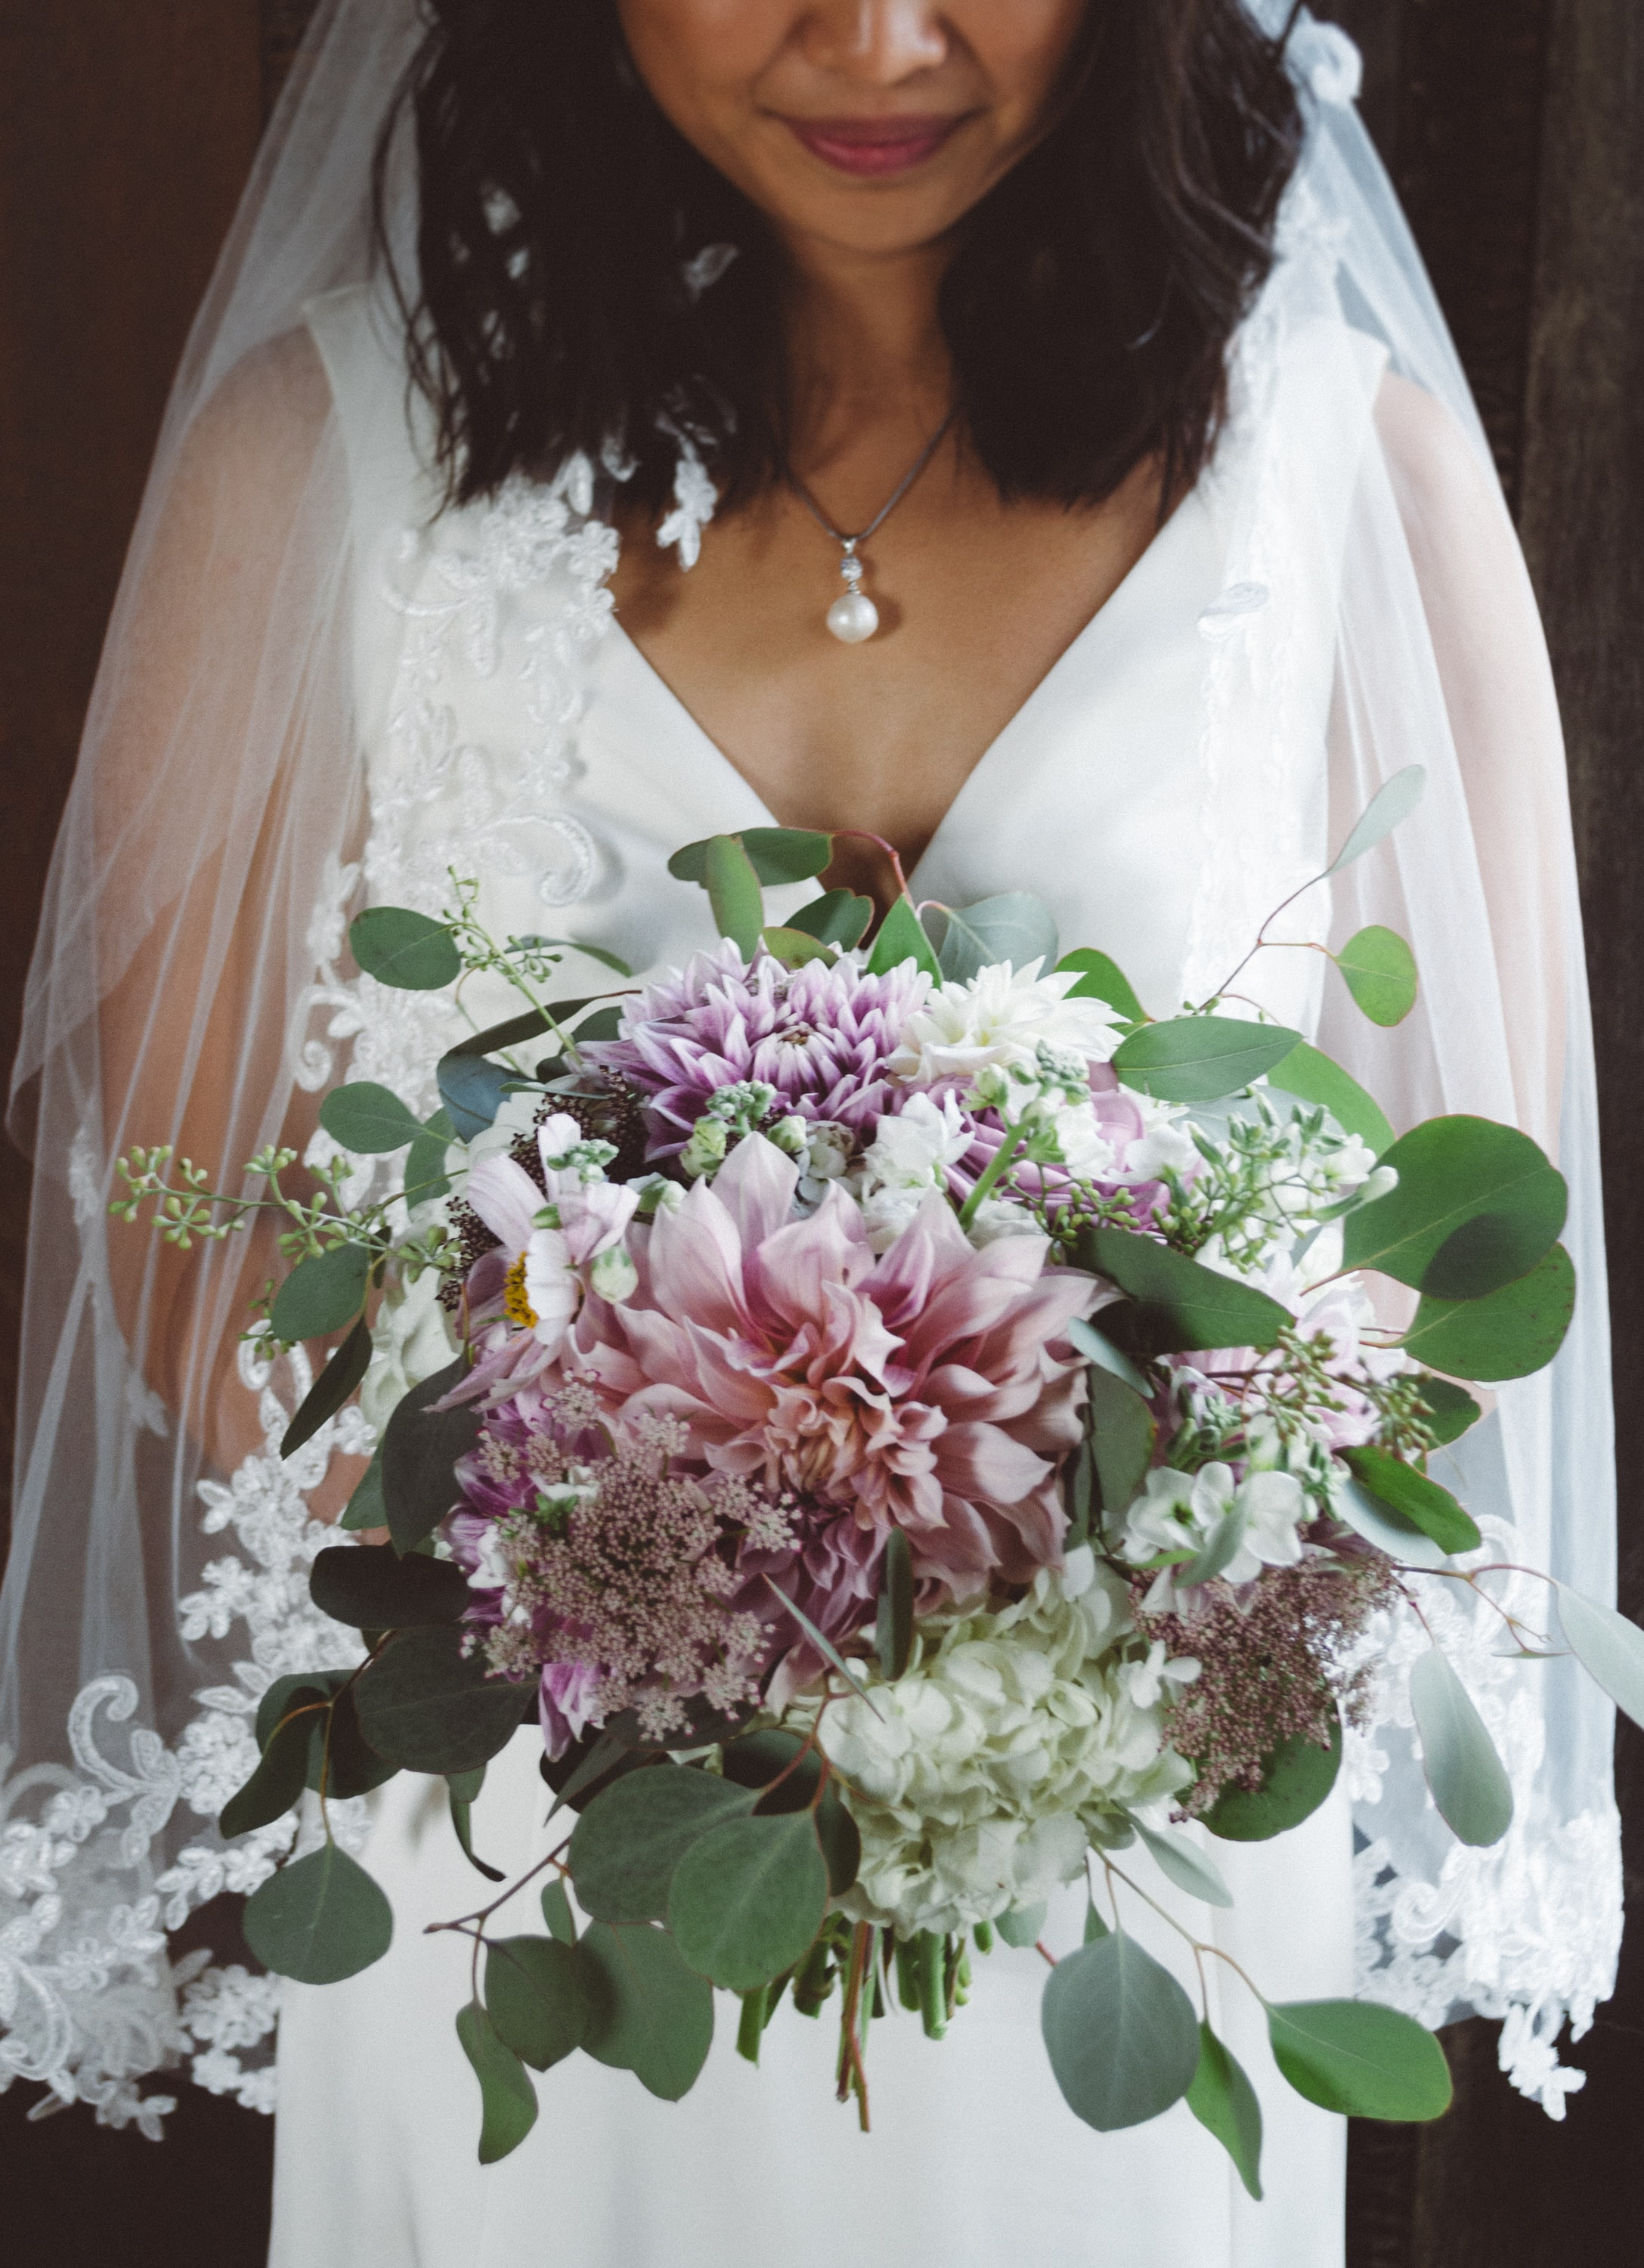 bride holding a bouquet of flower